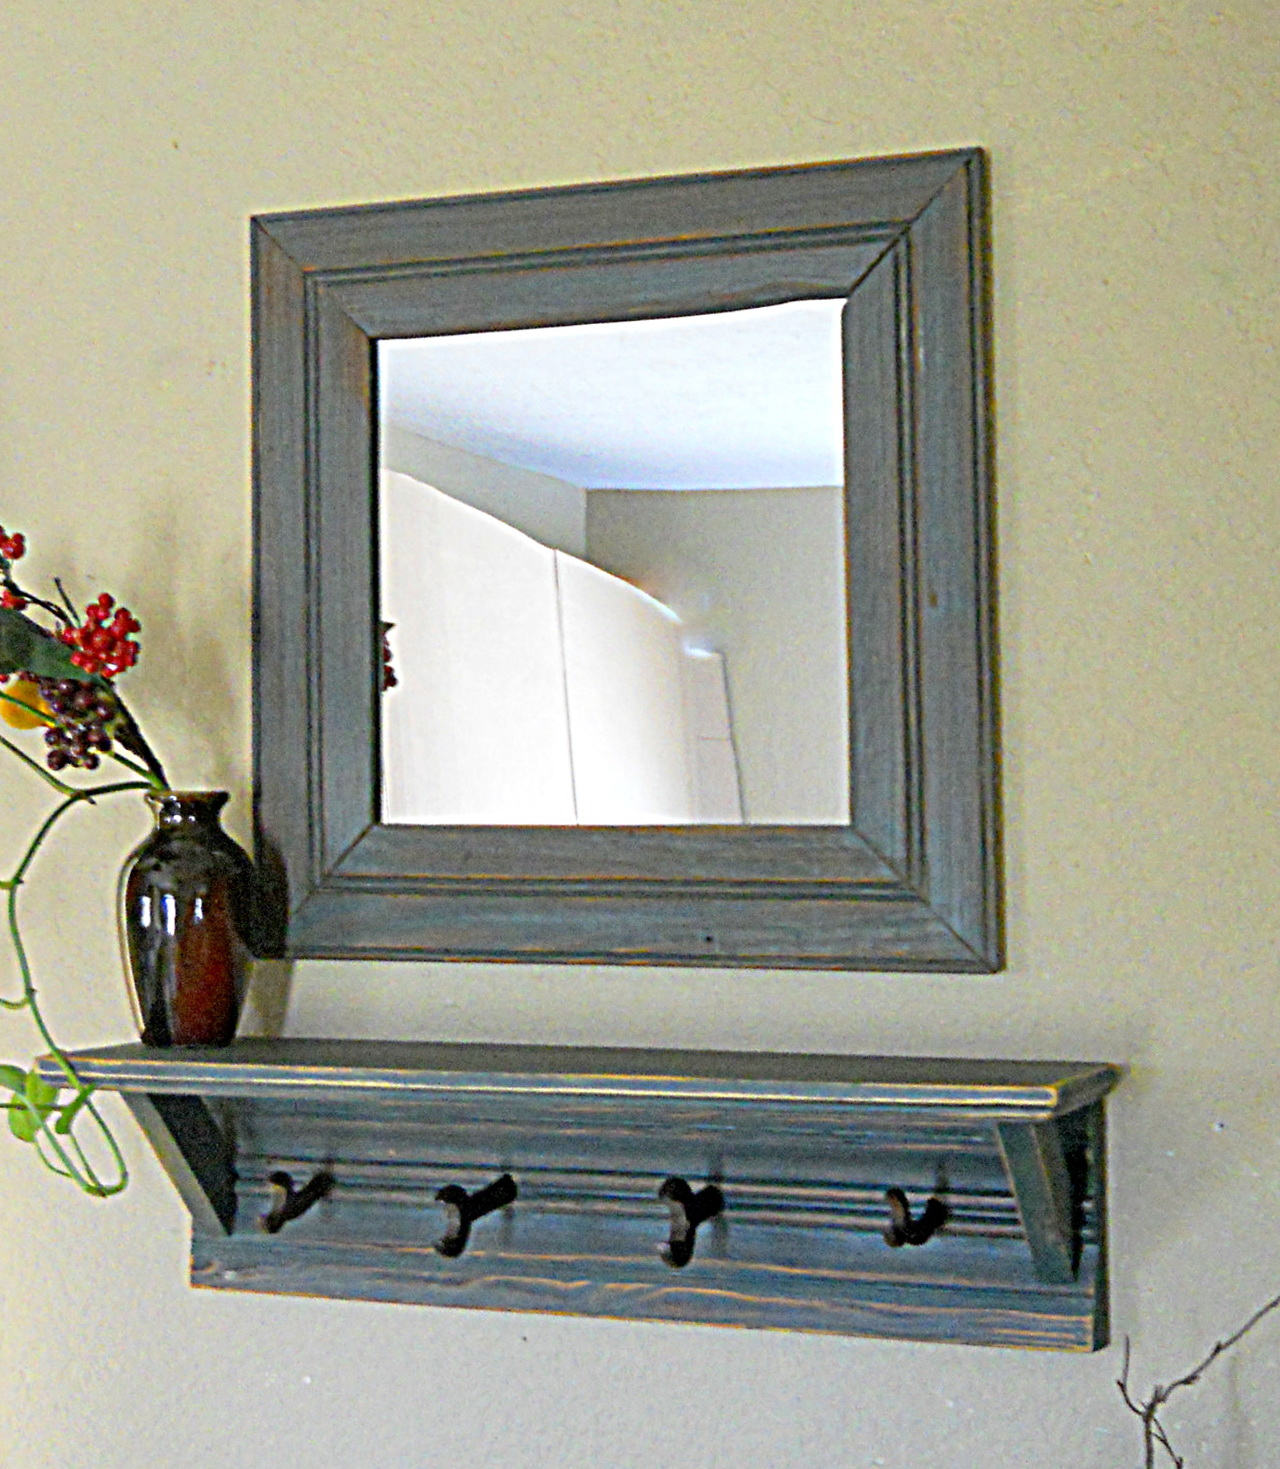 Wall Coat Rack With Shelf And Mirror